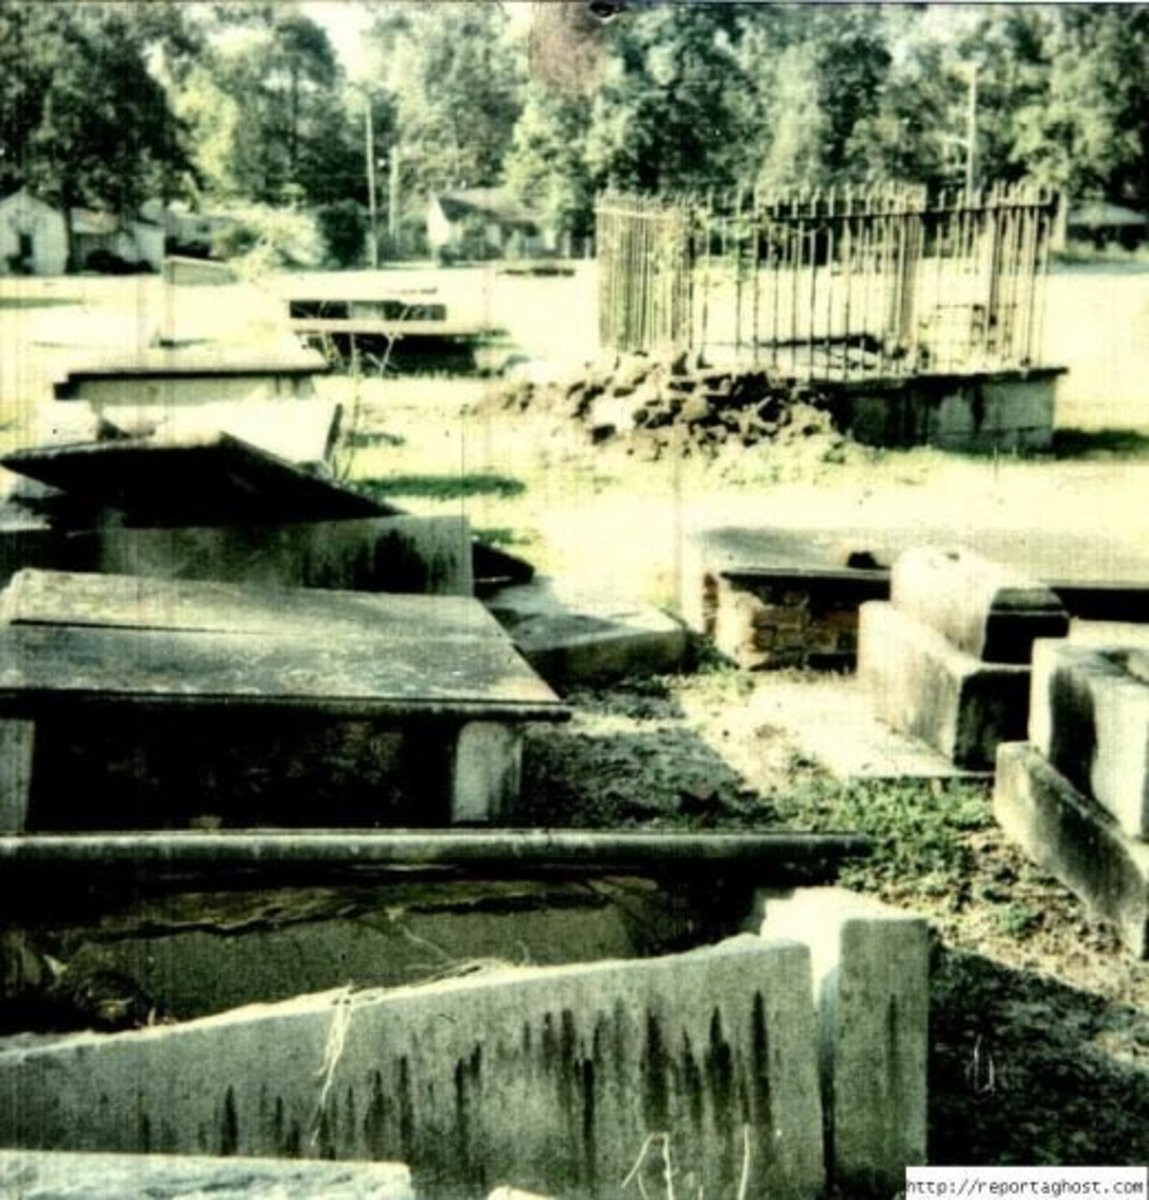 Here is a great photo of part of the cemetery on Boundary Street in Newberry S.C.